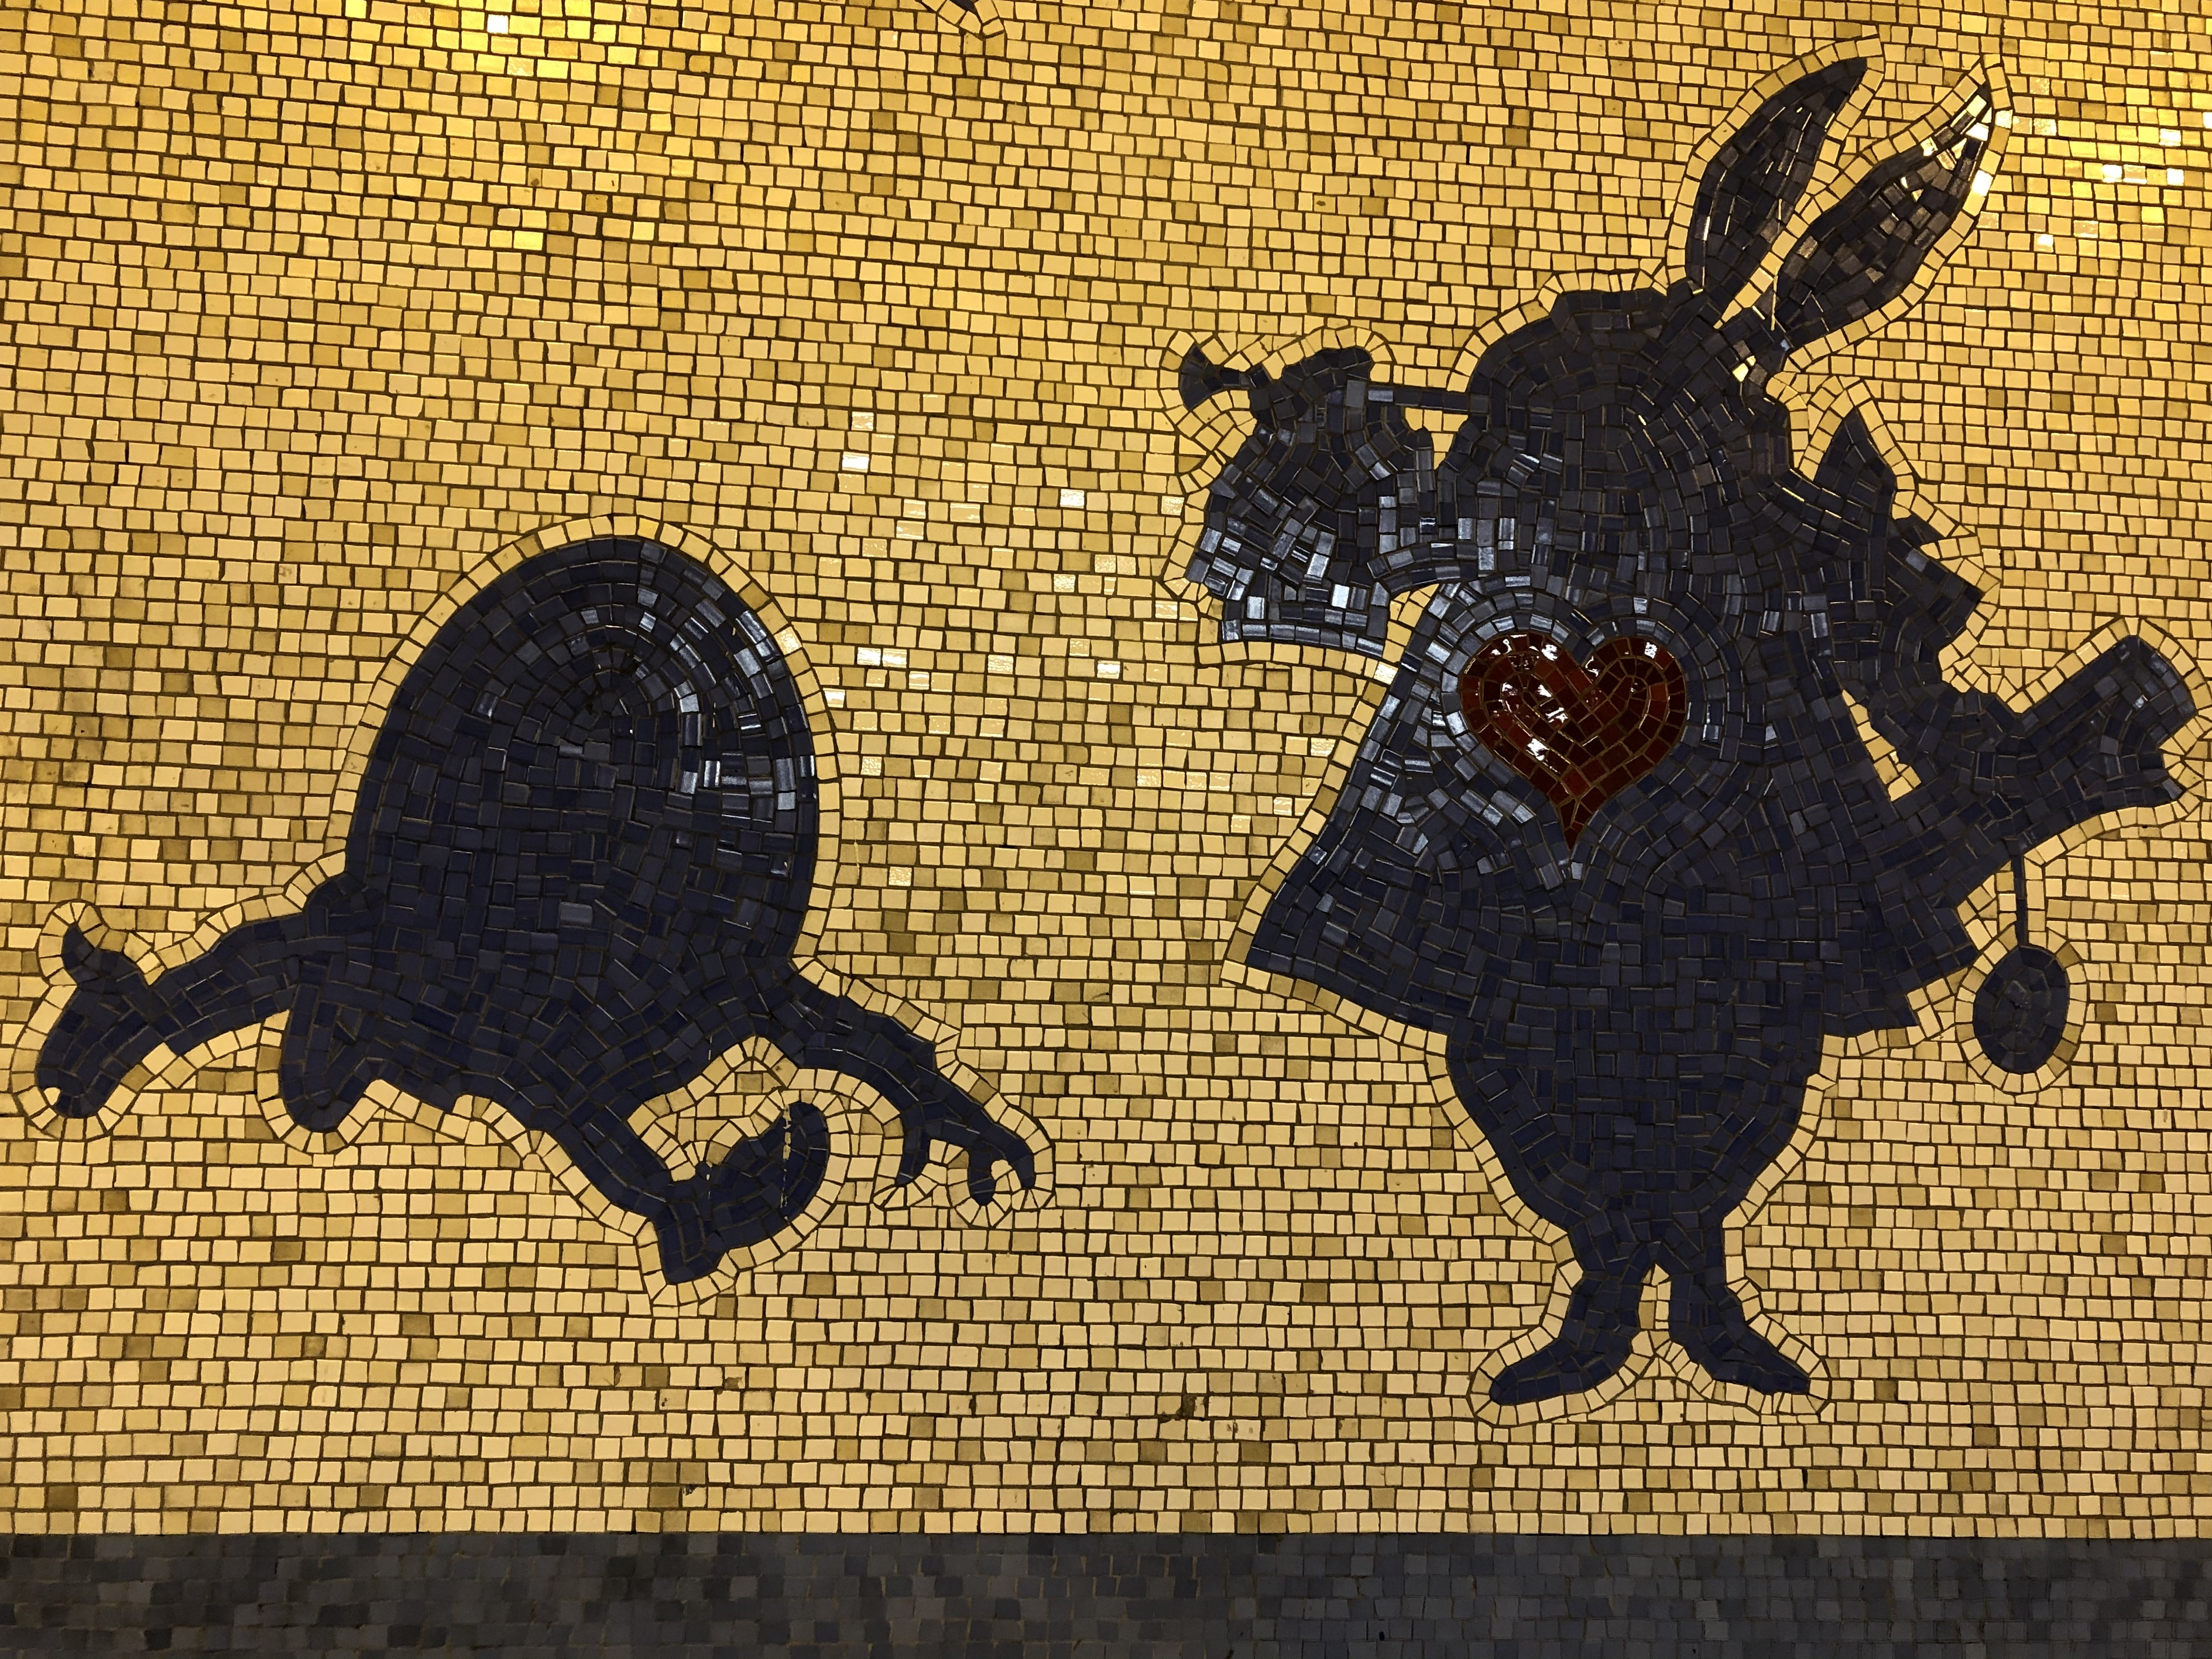 122719-Lewis-Carroll-rabbit-Manhattan-subway